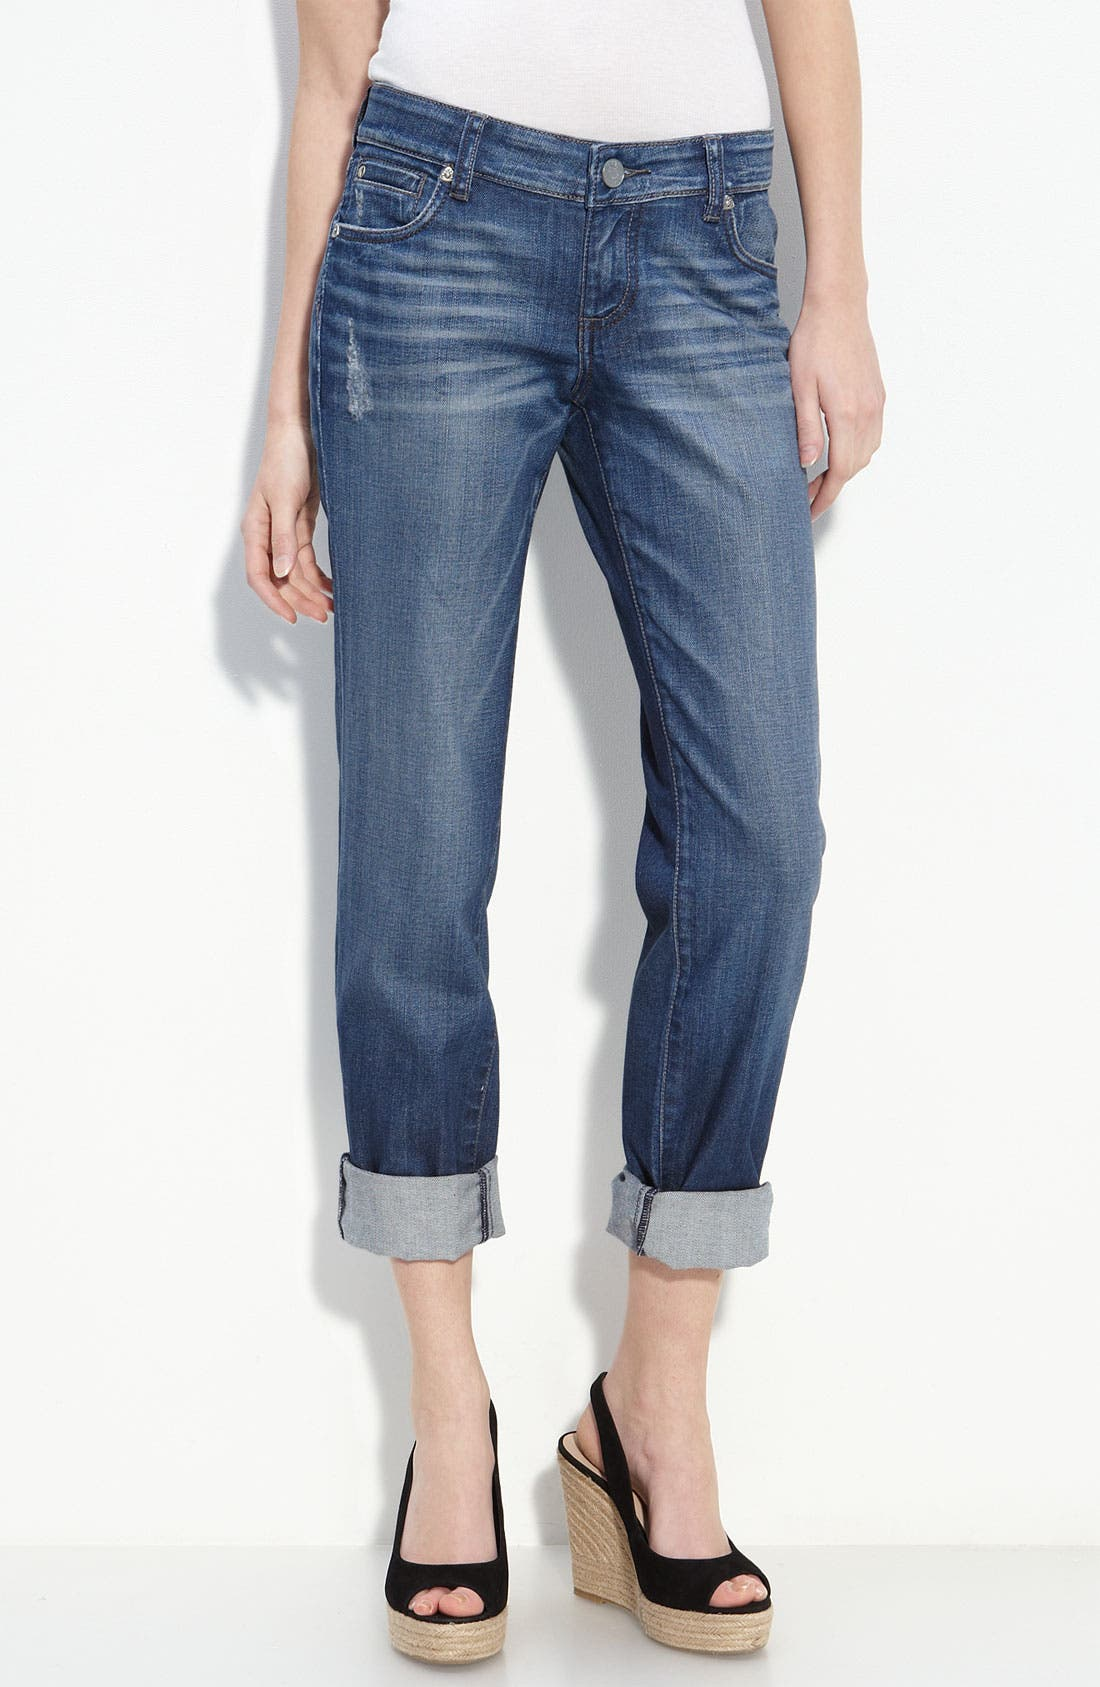 Main Image - KUT from the Kloth 'Roll-Up' Boyfriend Stretch Jeans (Indulgent Wash)